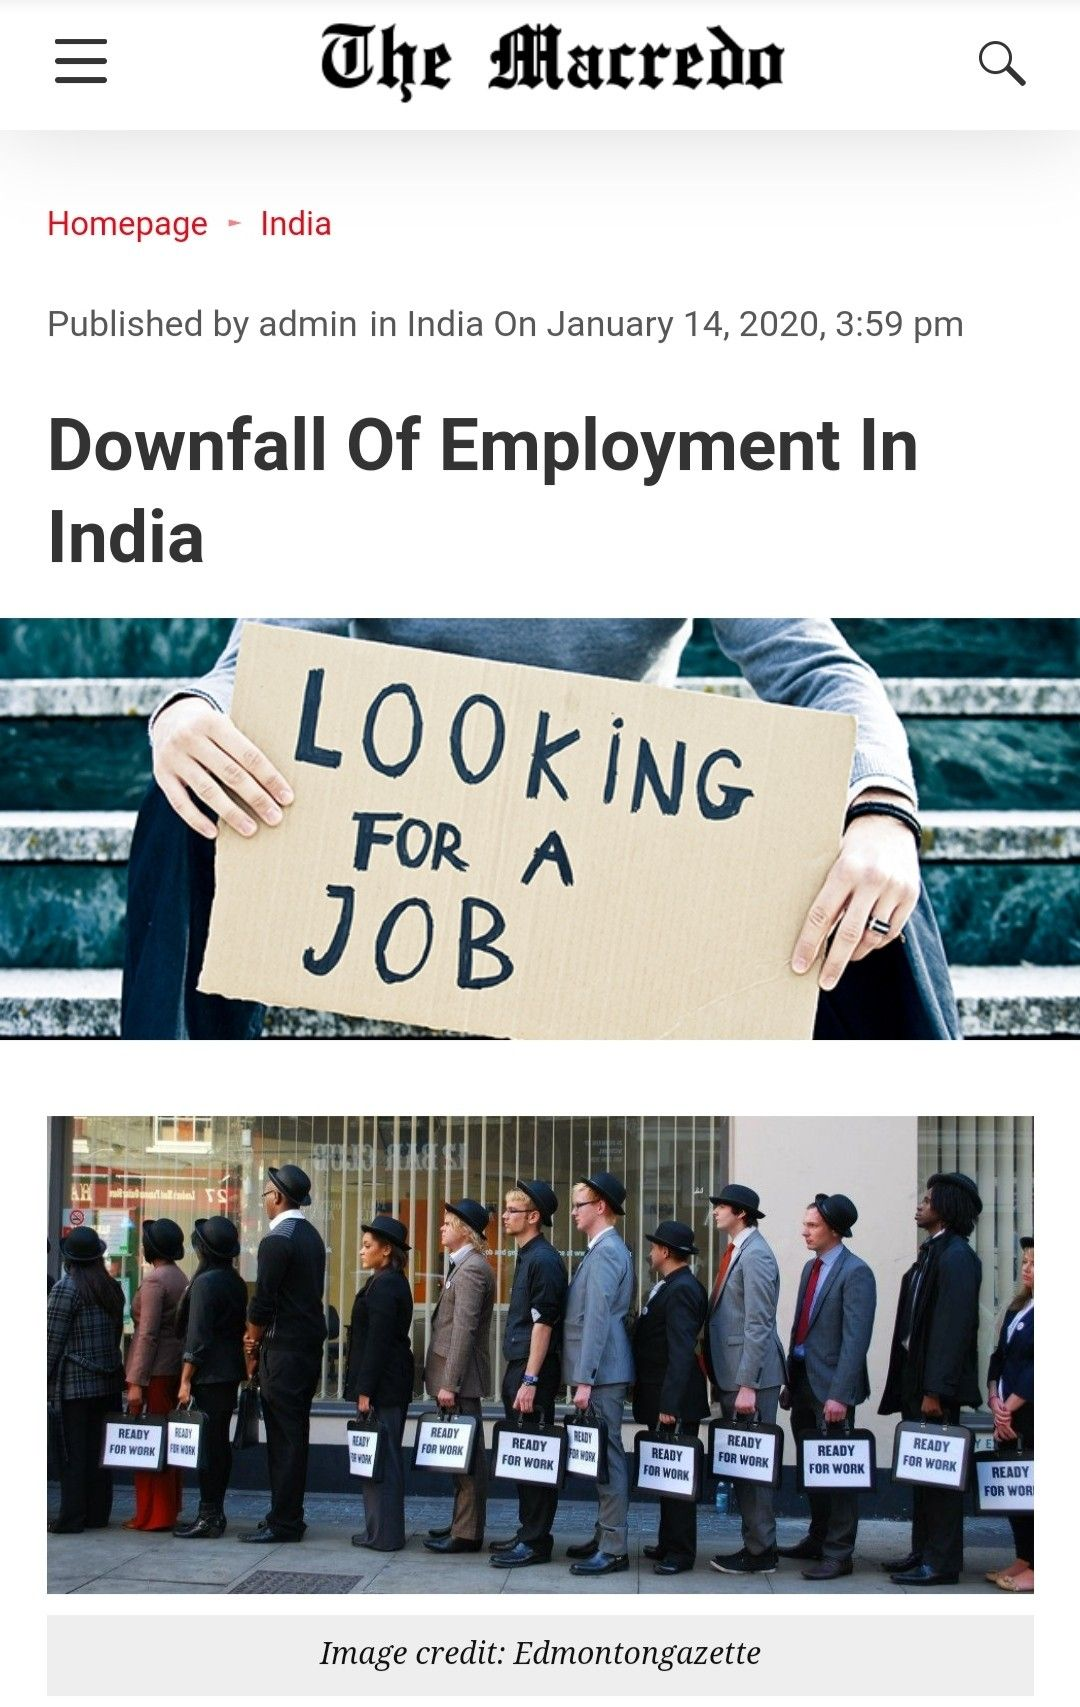 Downfall Of Employment In India in 2020 Structural